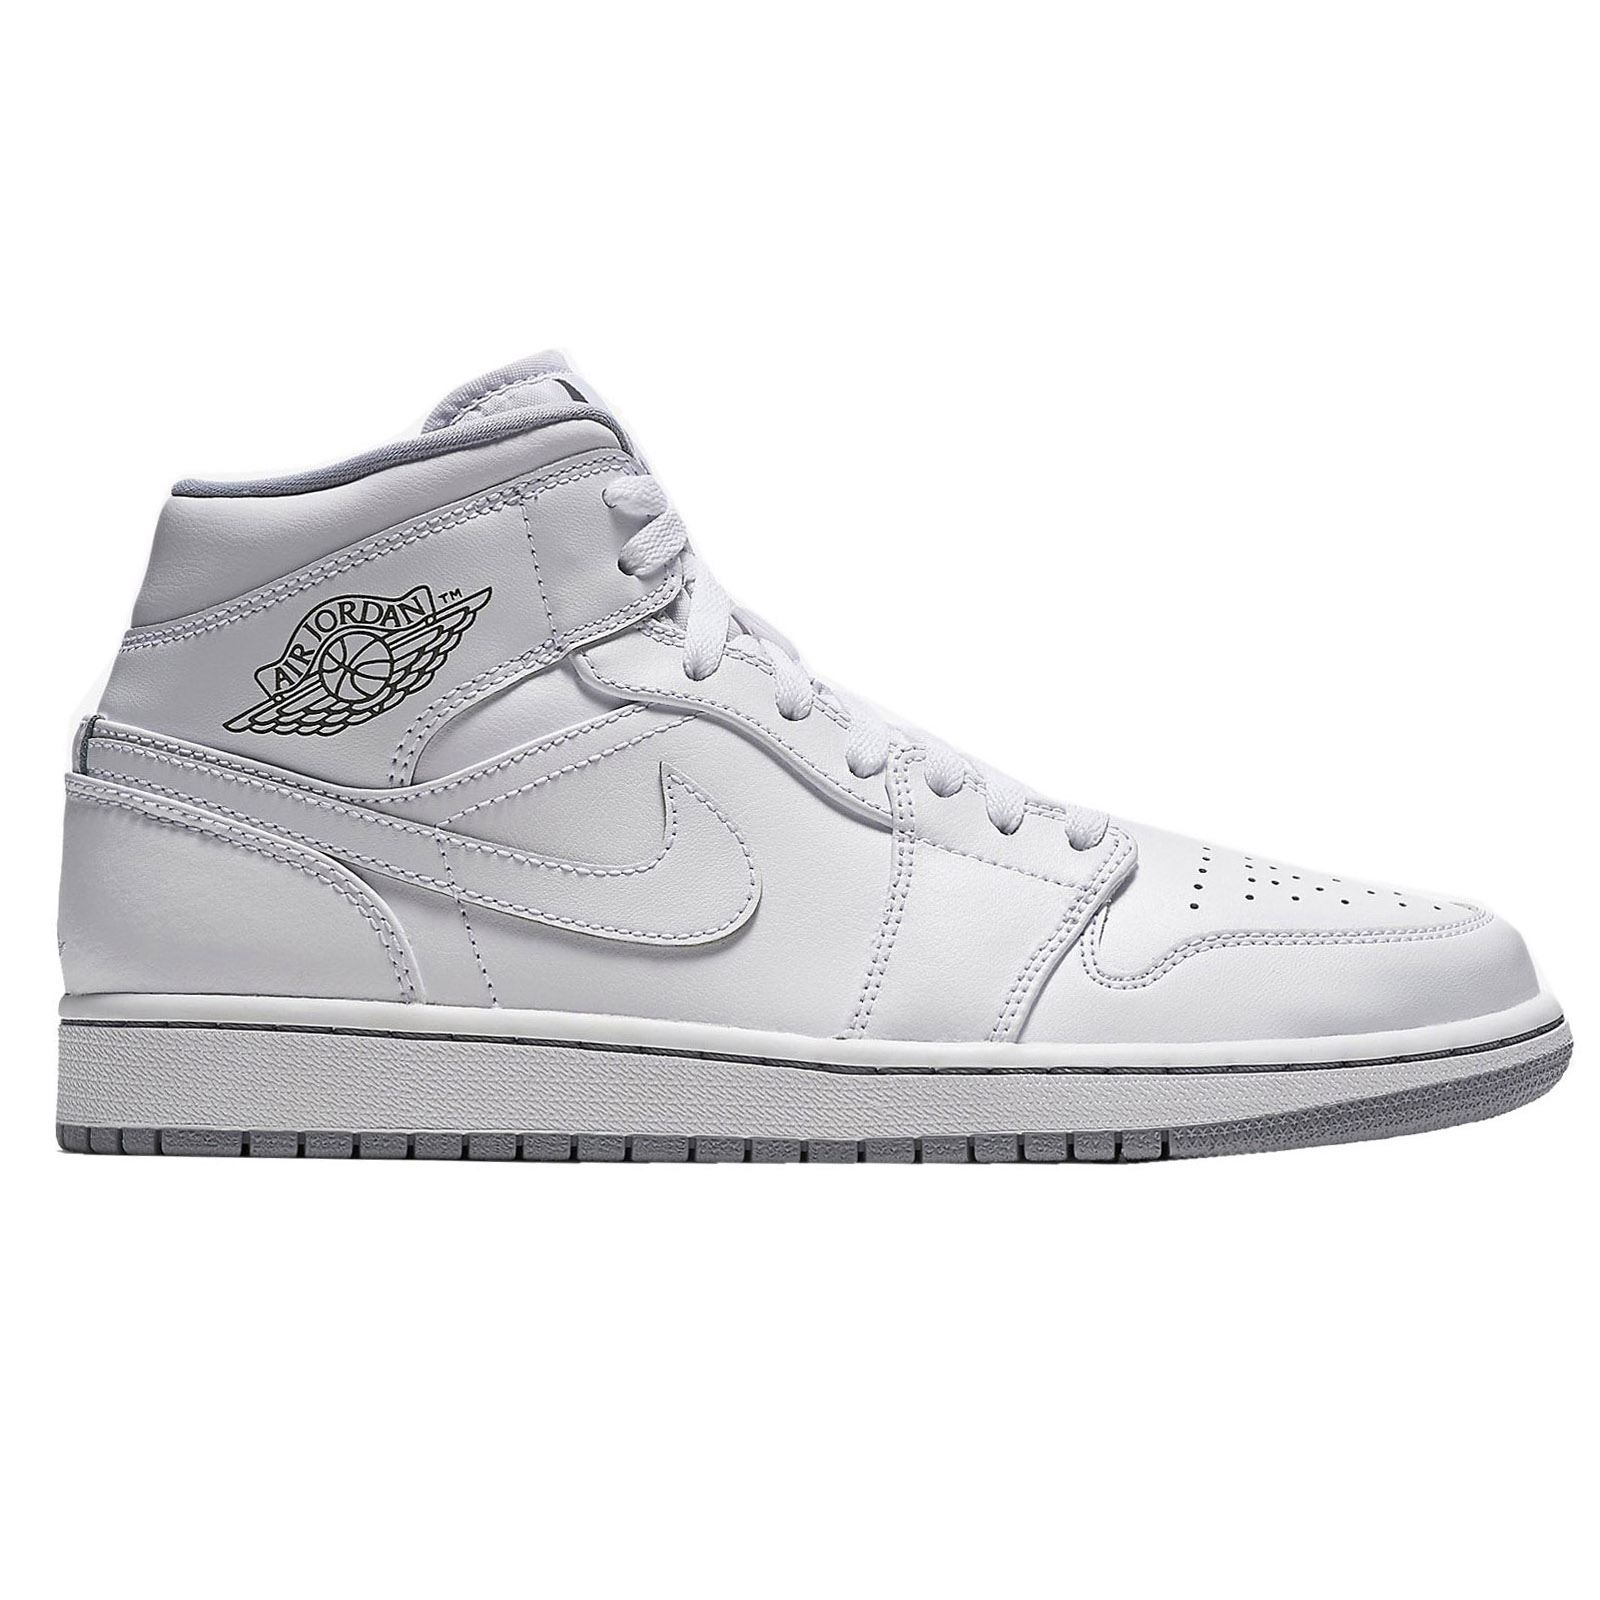 nike air jordan 1 mid white white youths trainers